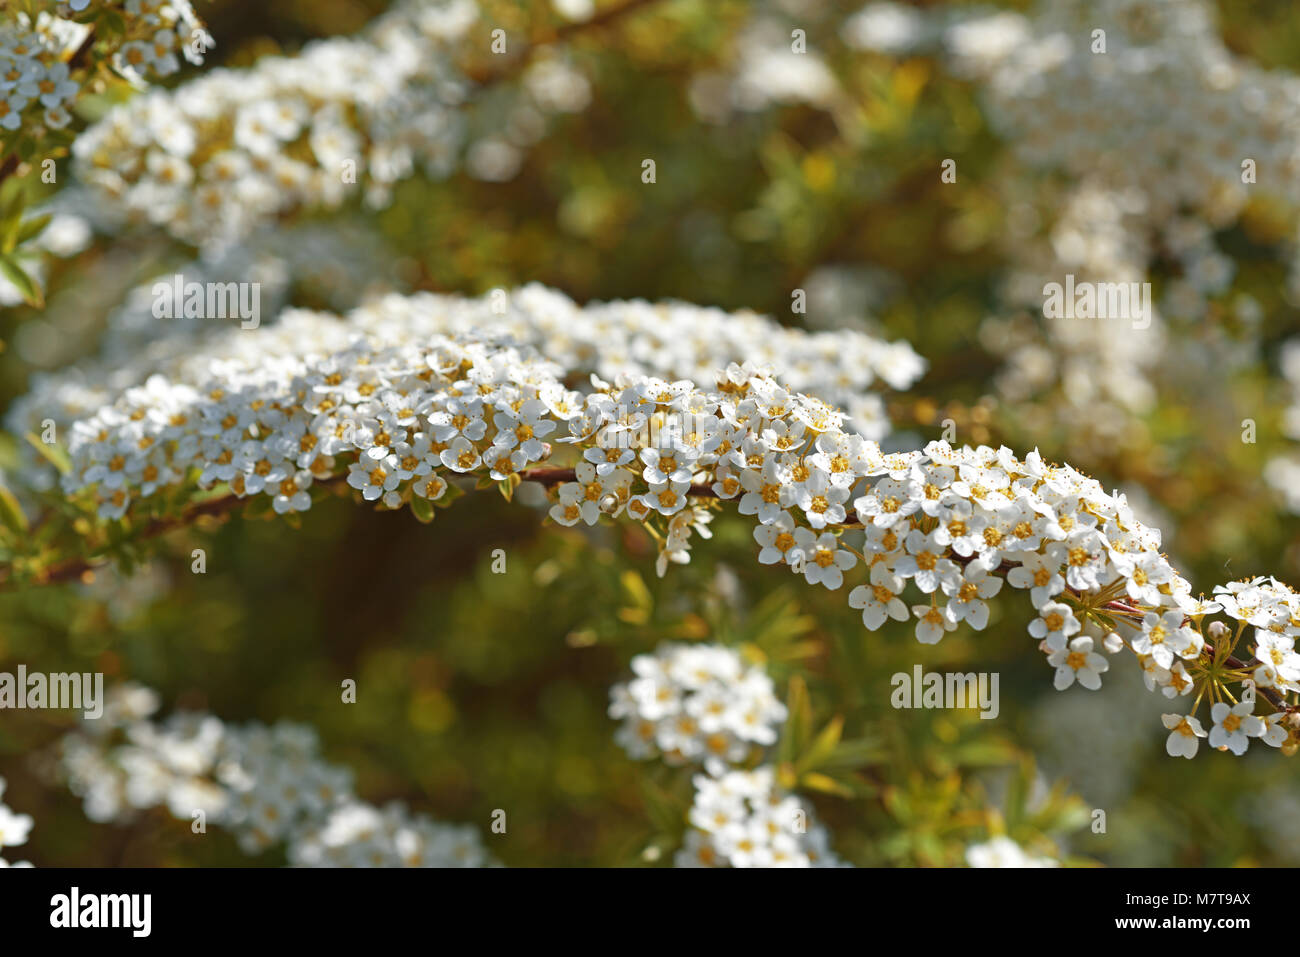 Bush with little white flowers gallery flower decoration ideas bush with little white flowers gallery flower decoration ideas bush with little white flowers gallery flower mightylinksfo Images